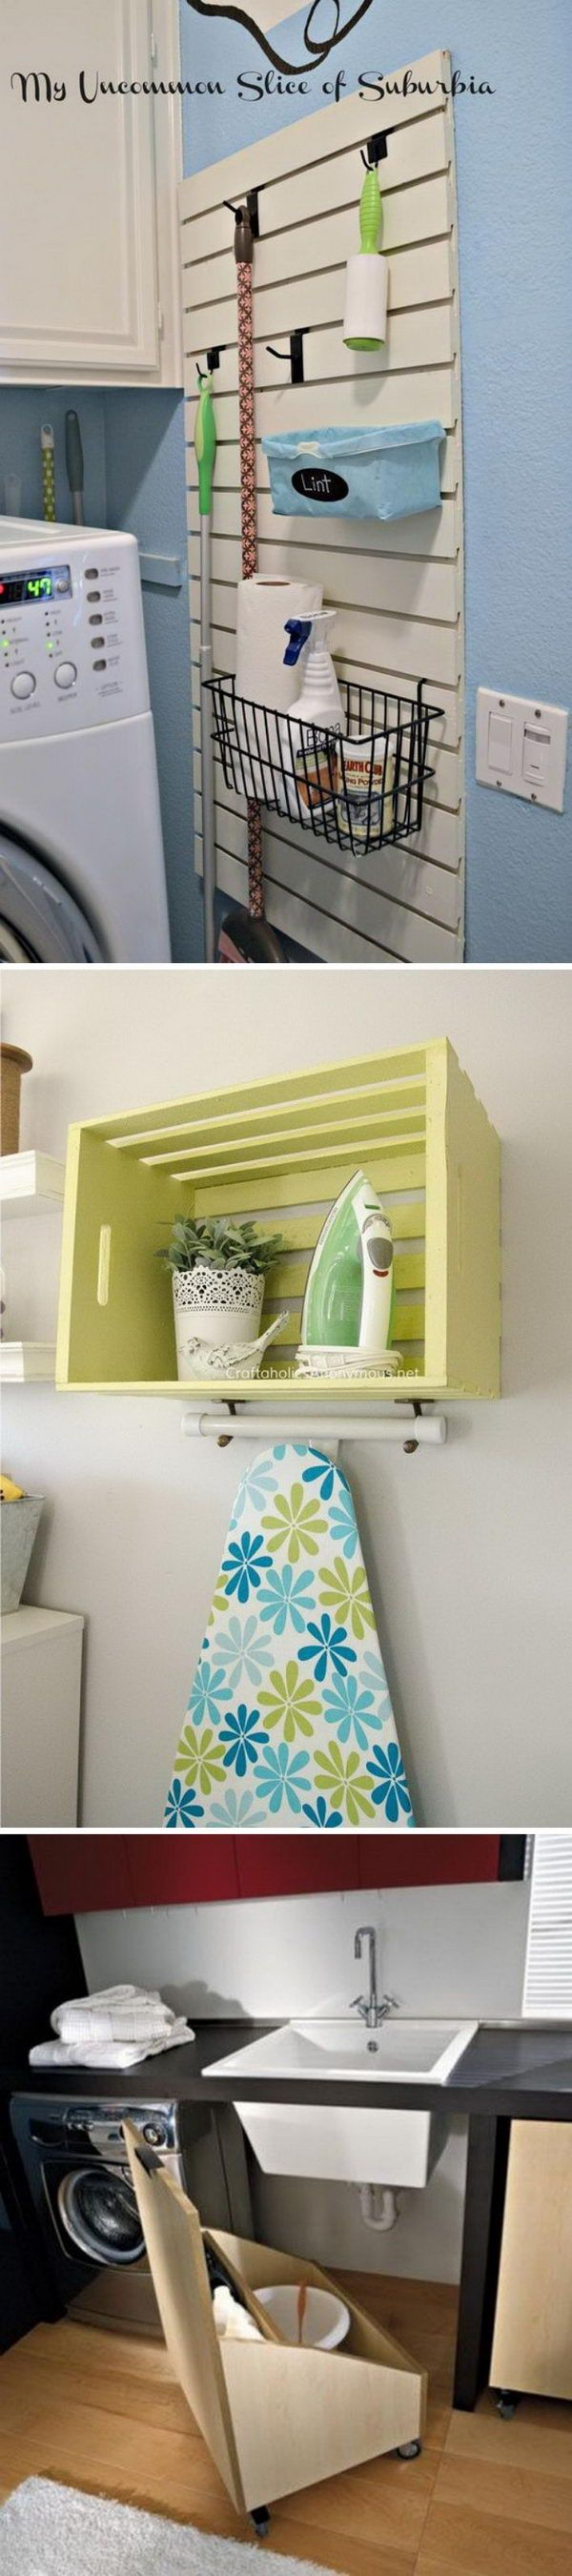 20 clever laundry room and storage ideas